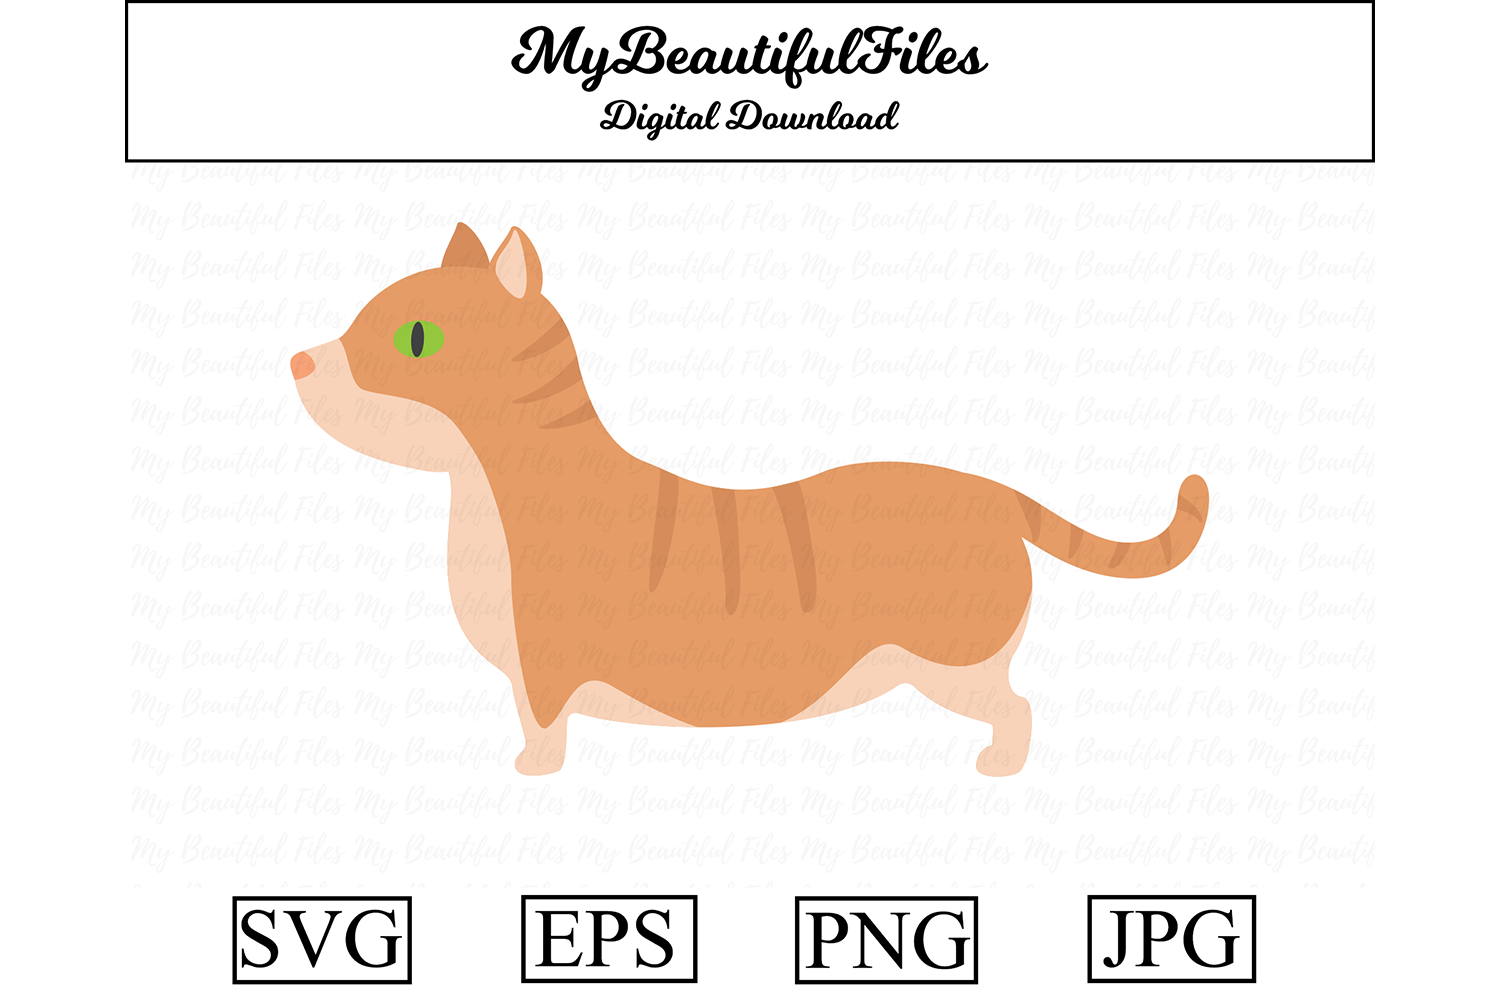 Download Free Fqvh 9ungk311m for Cricut Explore, Silhouette and other cutting machines.